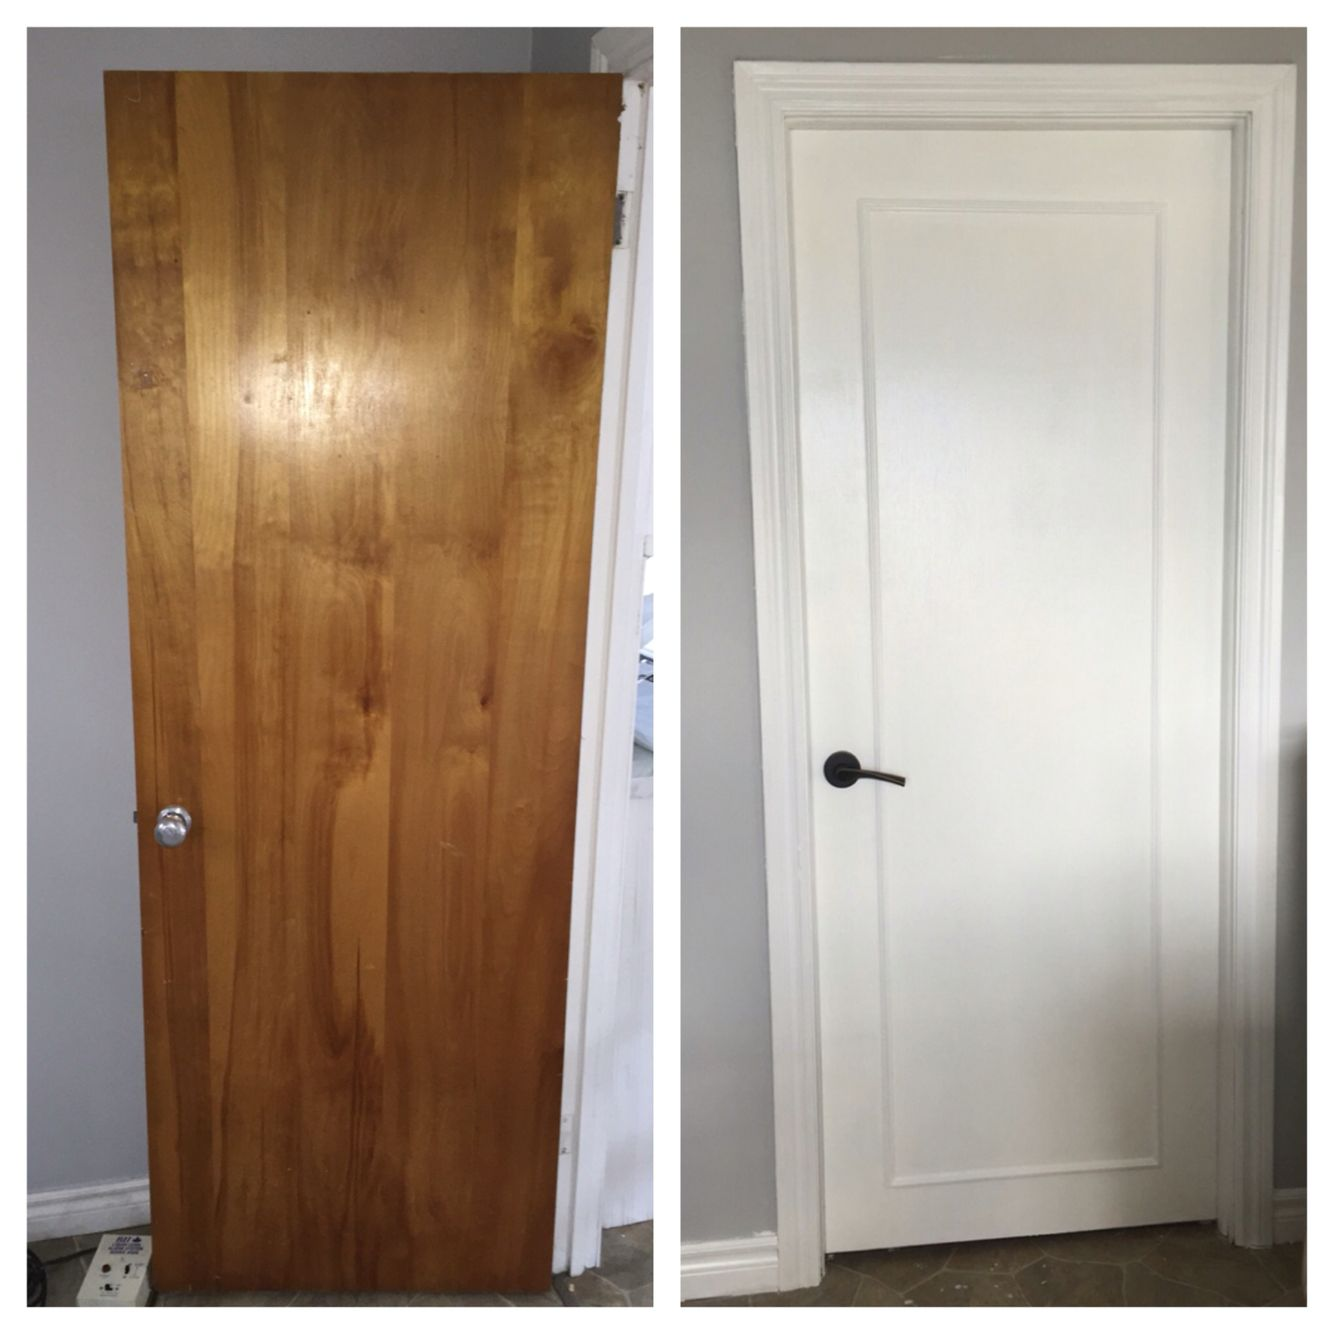 Updated old wood doors to a modern look with wood trim for Wood doors painted trim